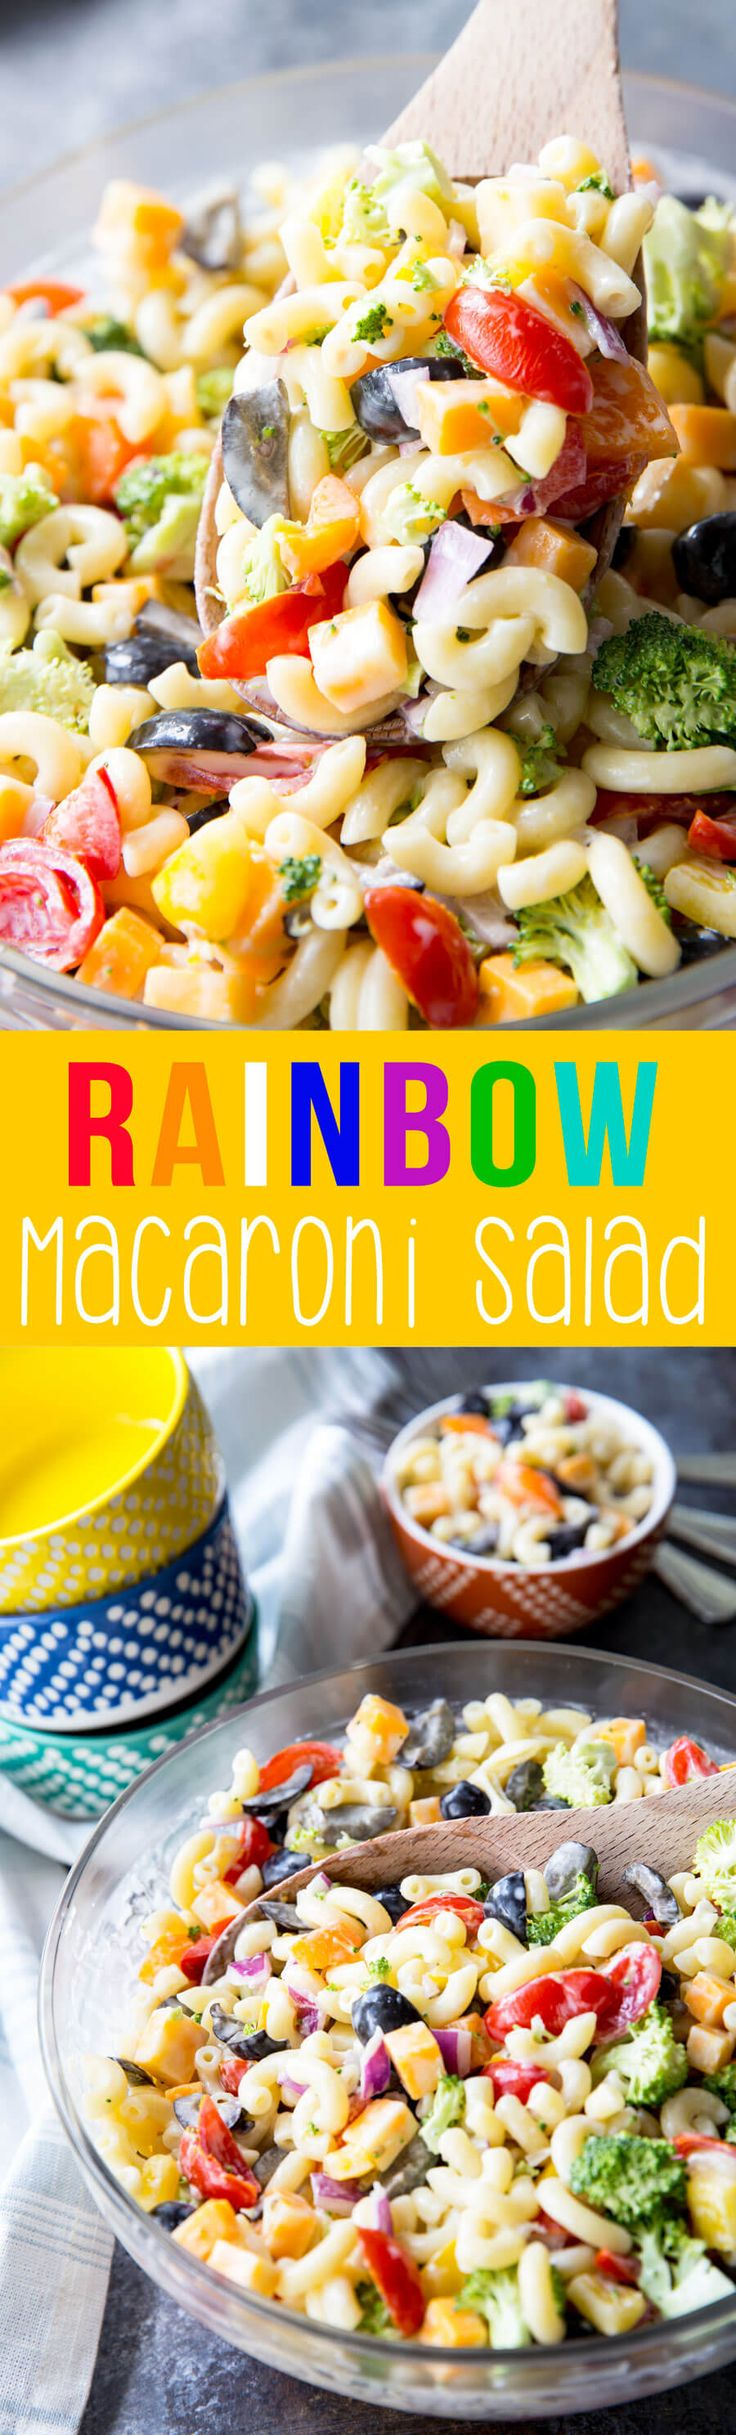 This Rainbow macaroni salad is the perfect summer salad. Light, delicious, and full of great veggies. Awesome for barbeques or picnics.